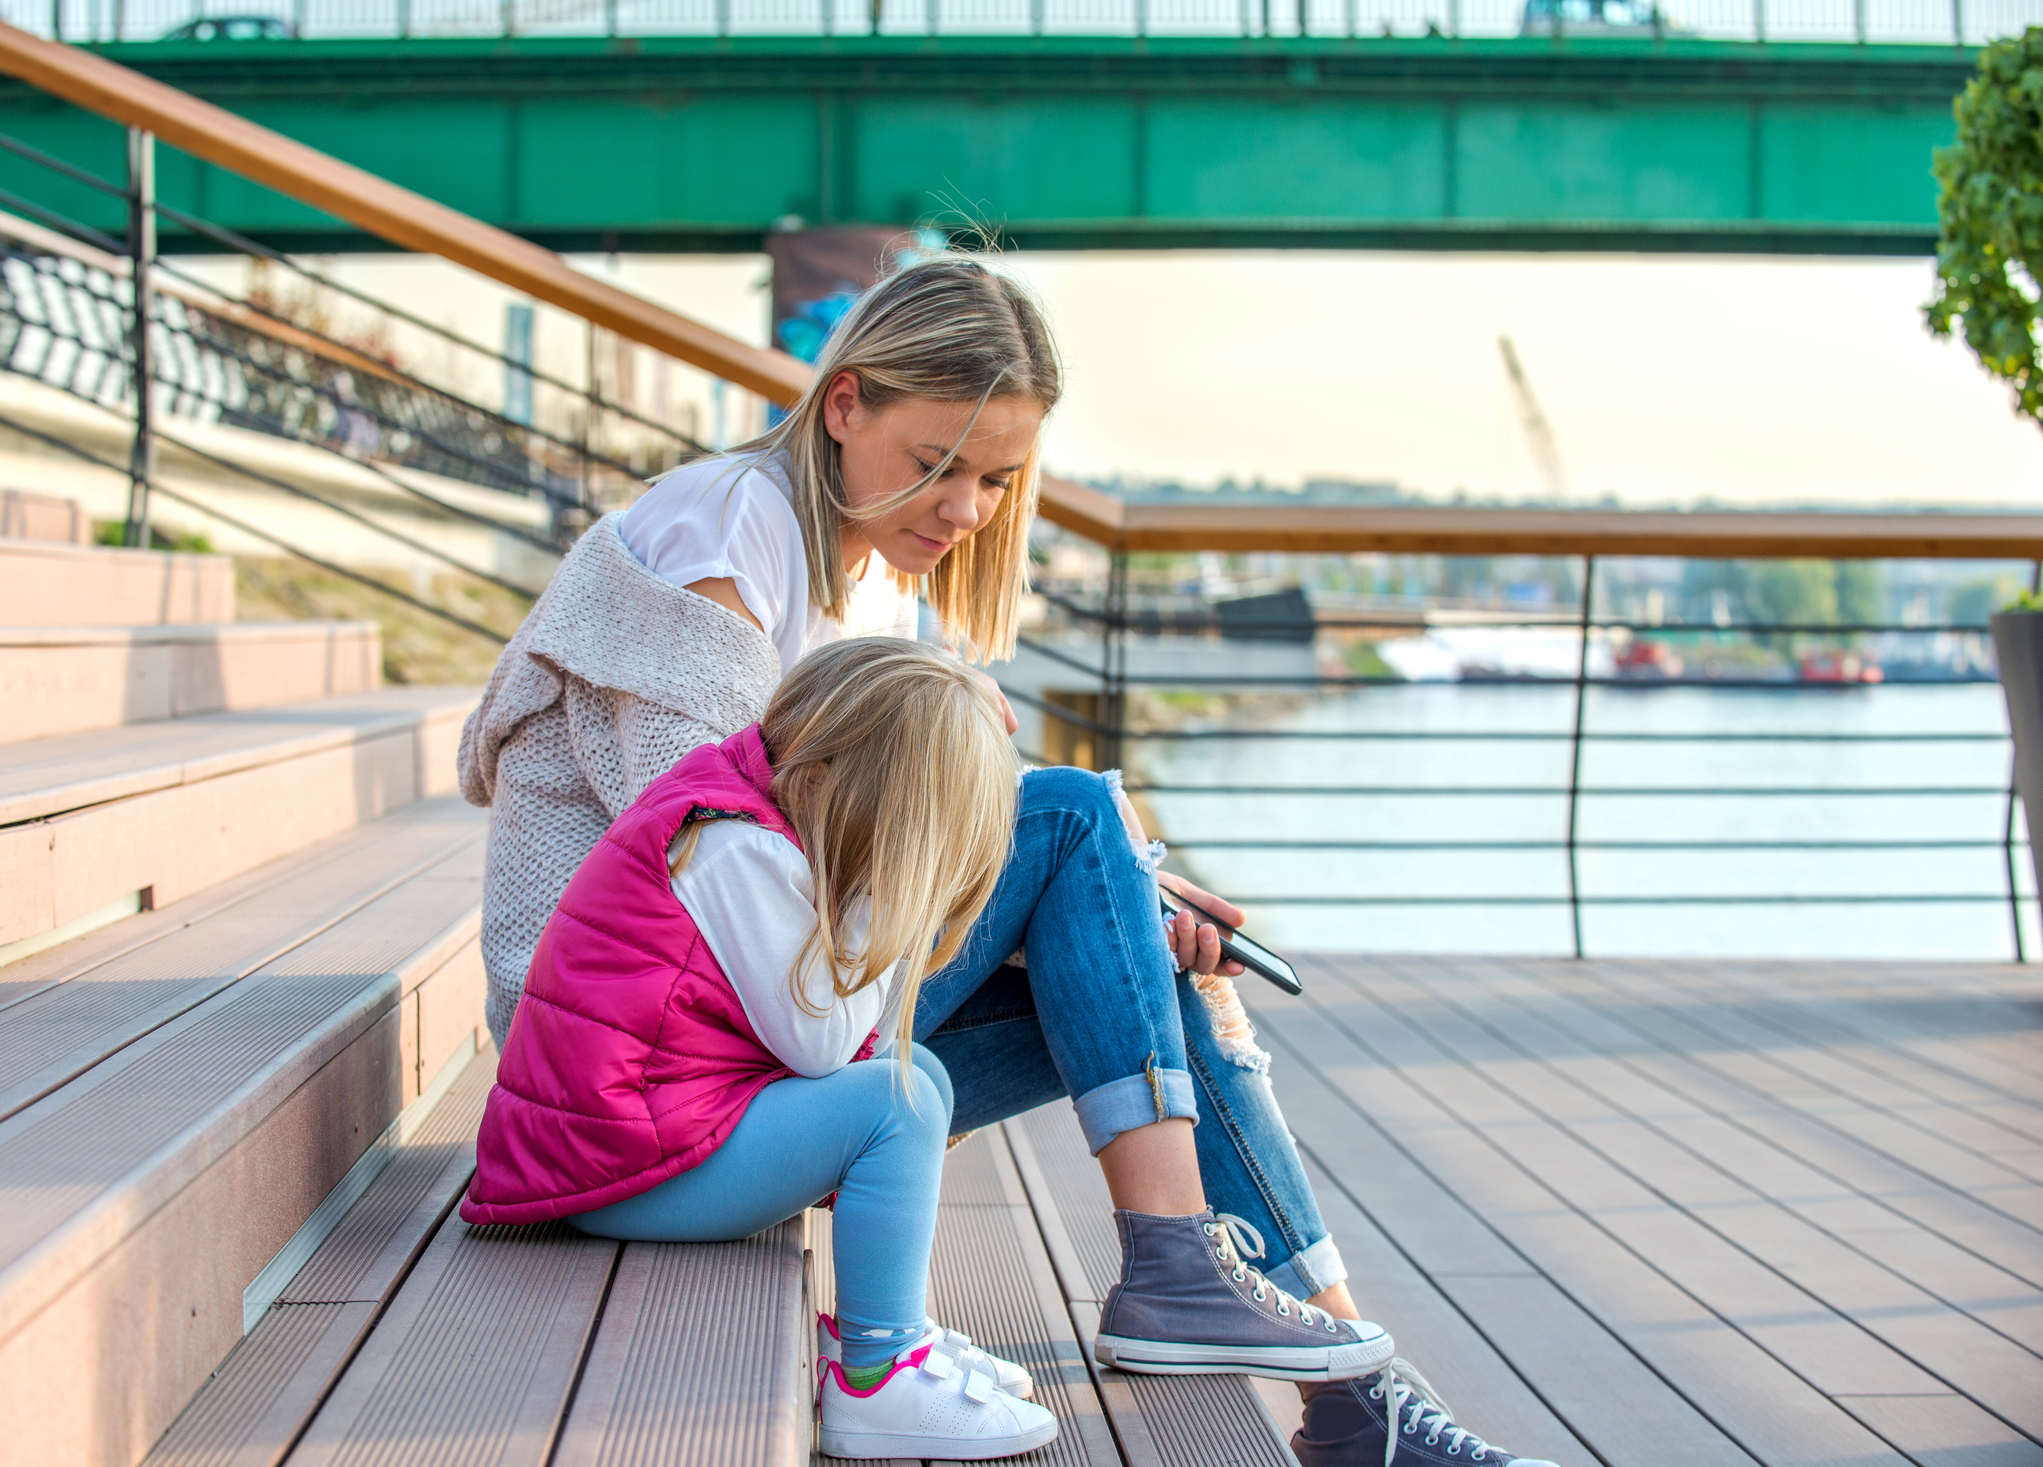 Mother and daughter sitting outside together on stairs